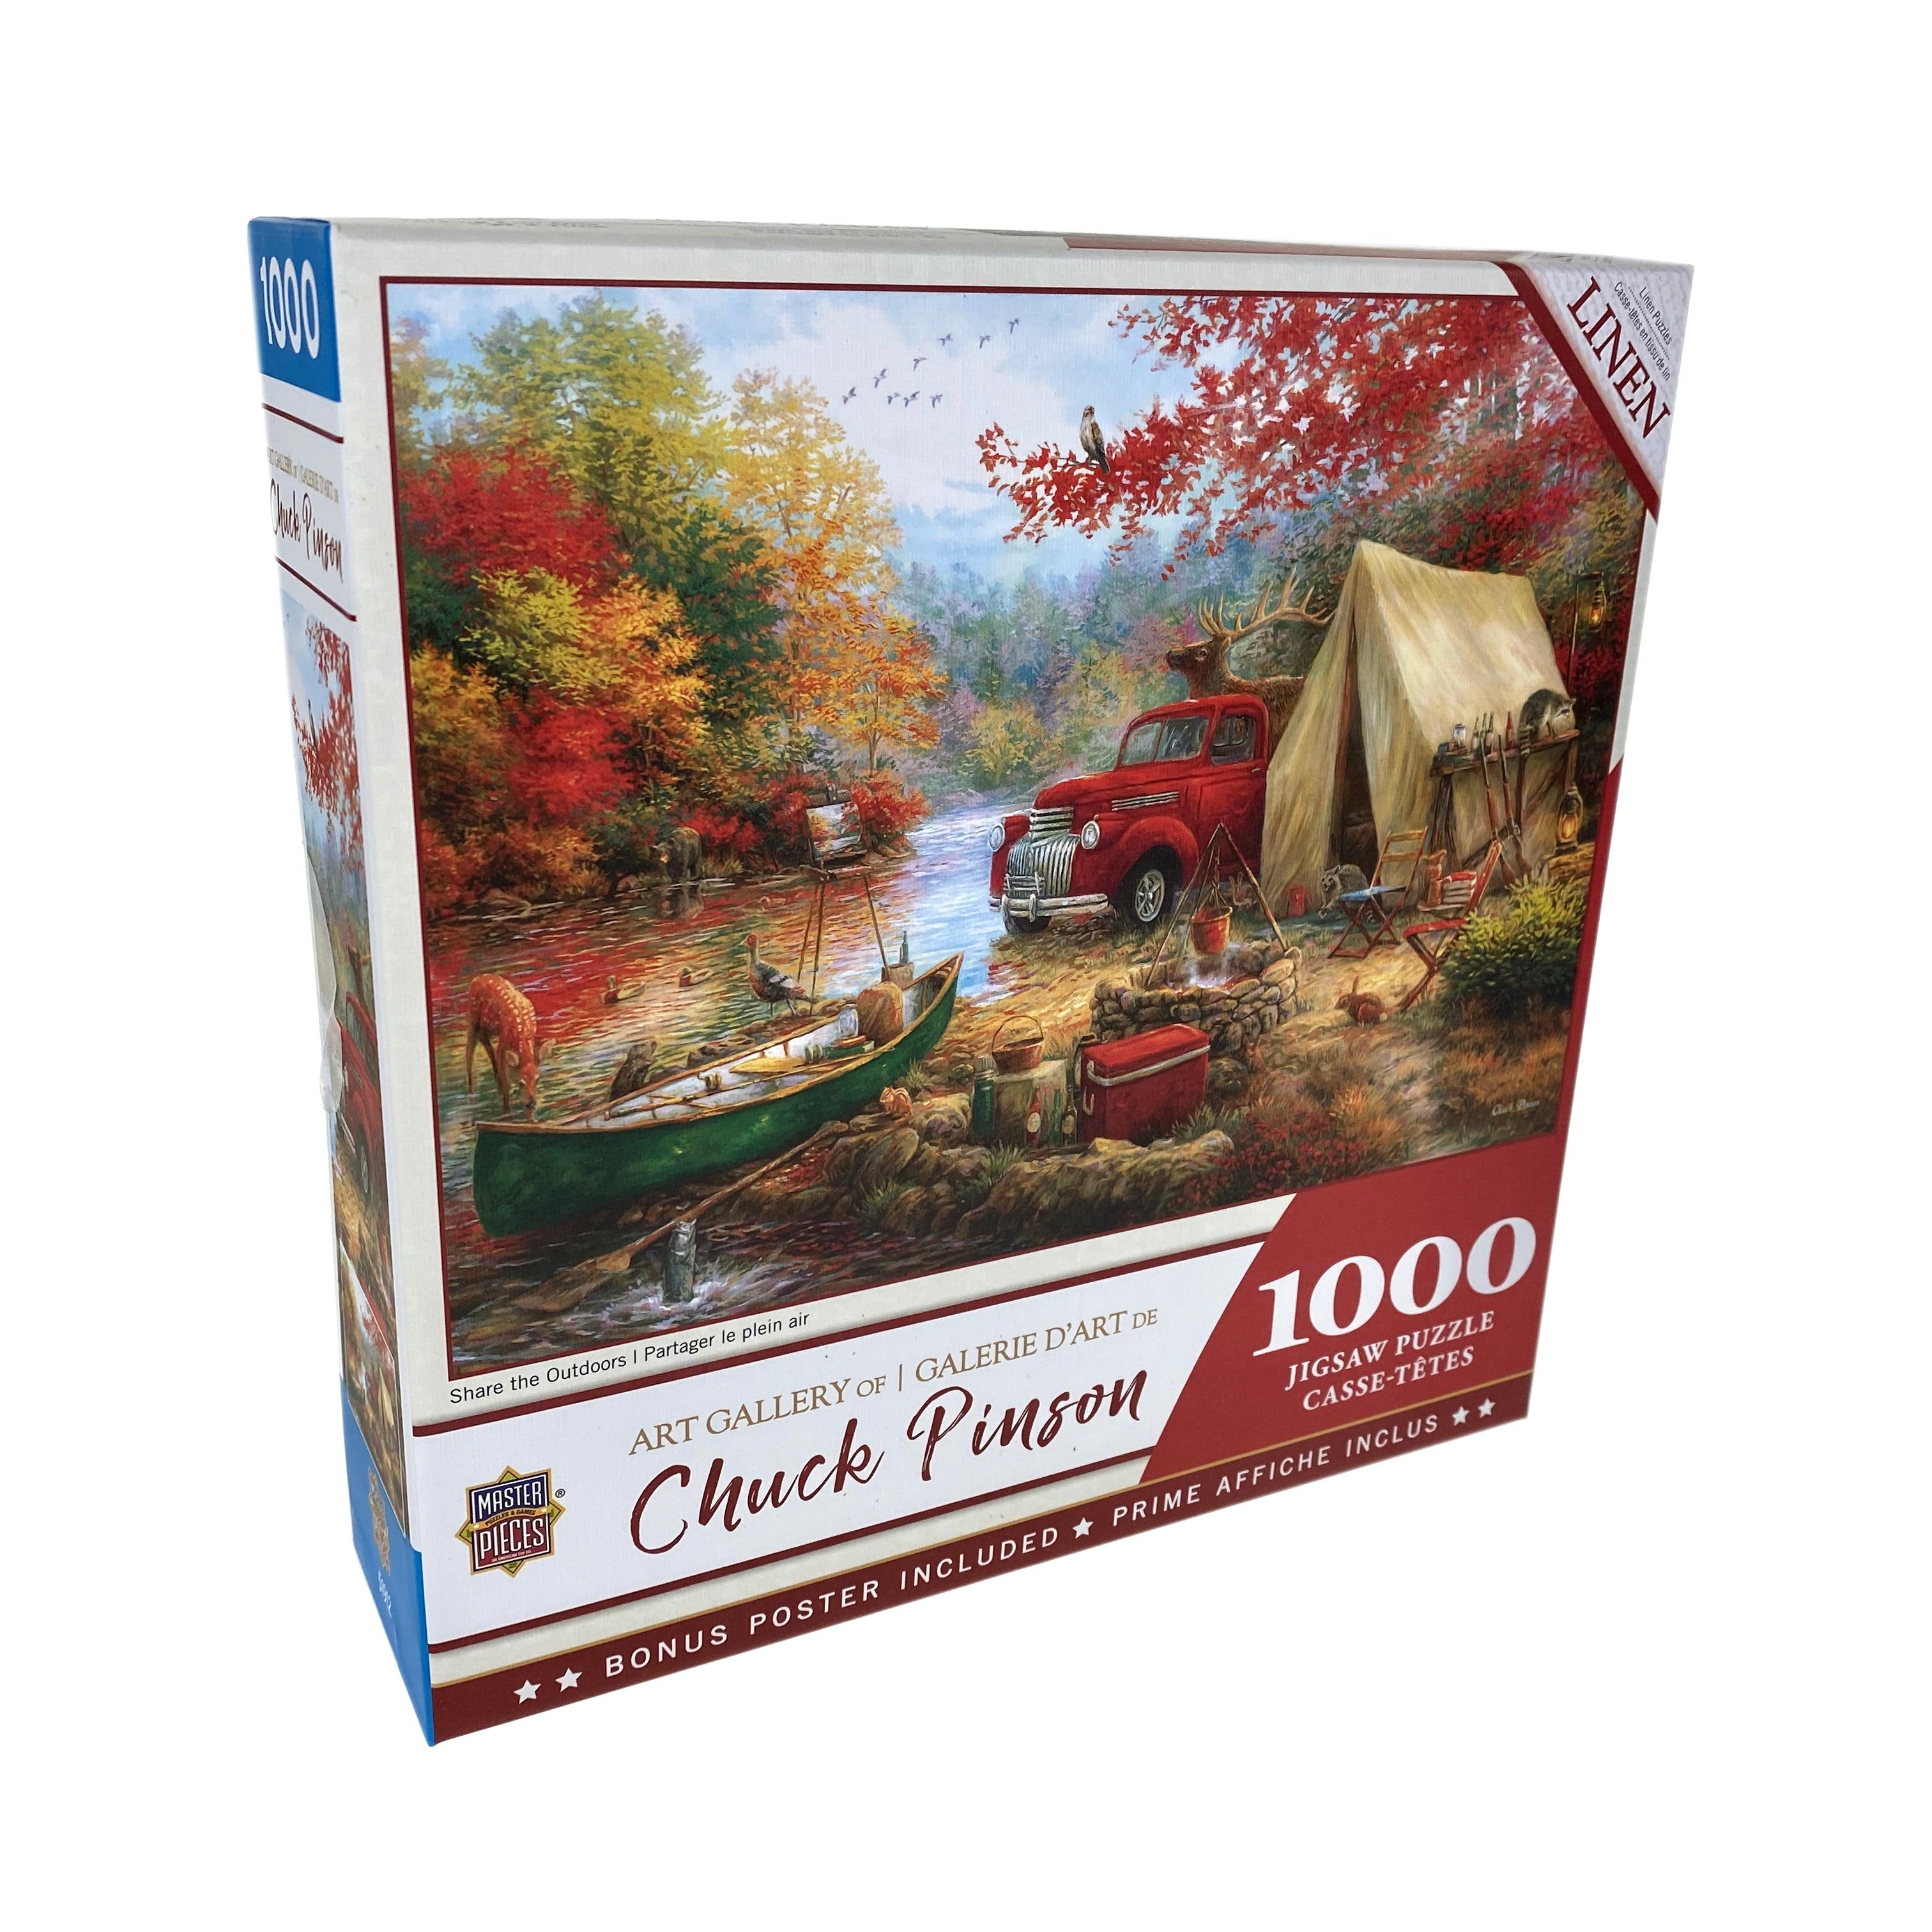 Share The Outdoors 1000 Piece Chuck Pinson Puzzle